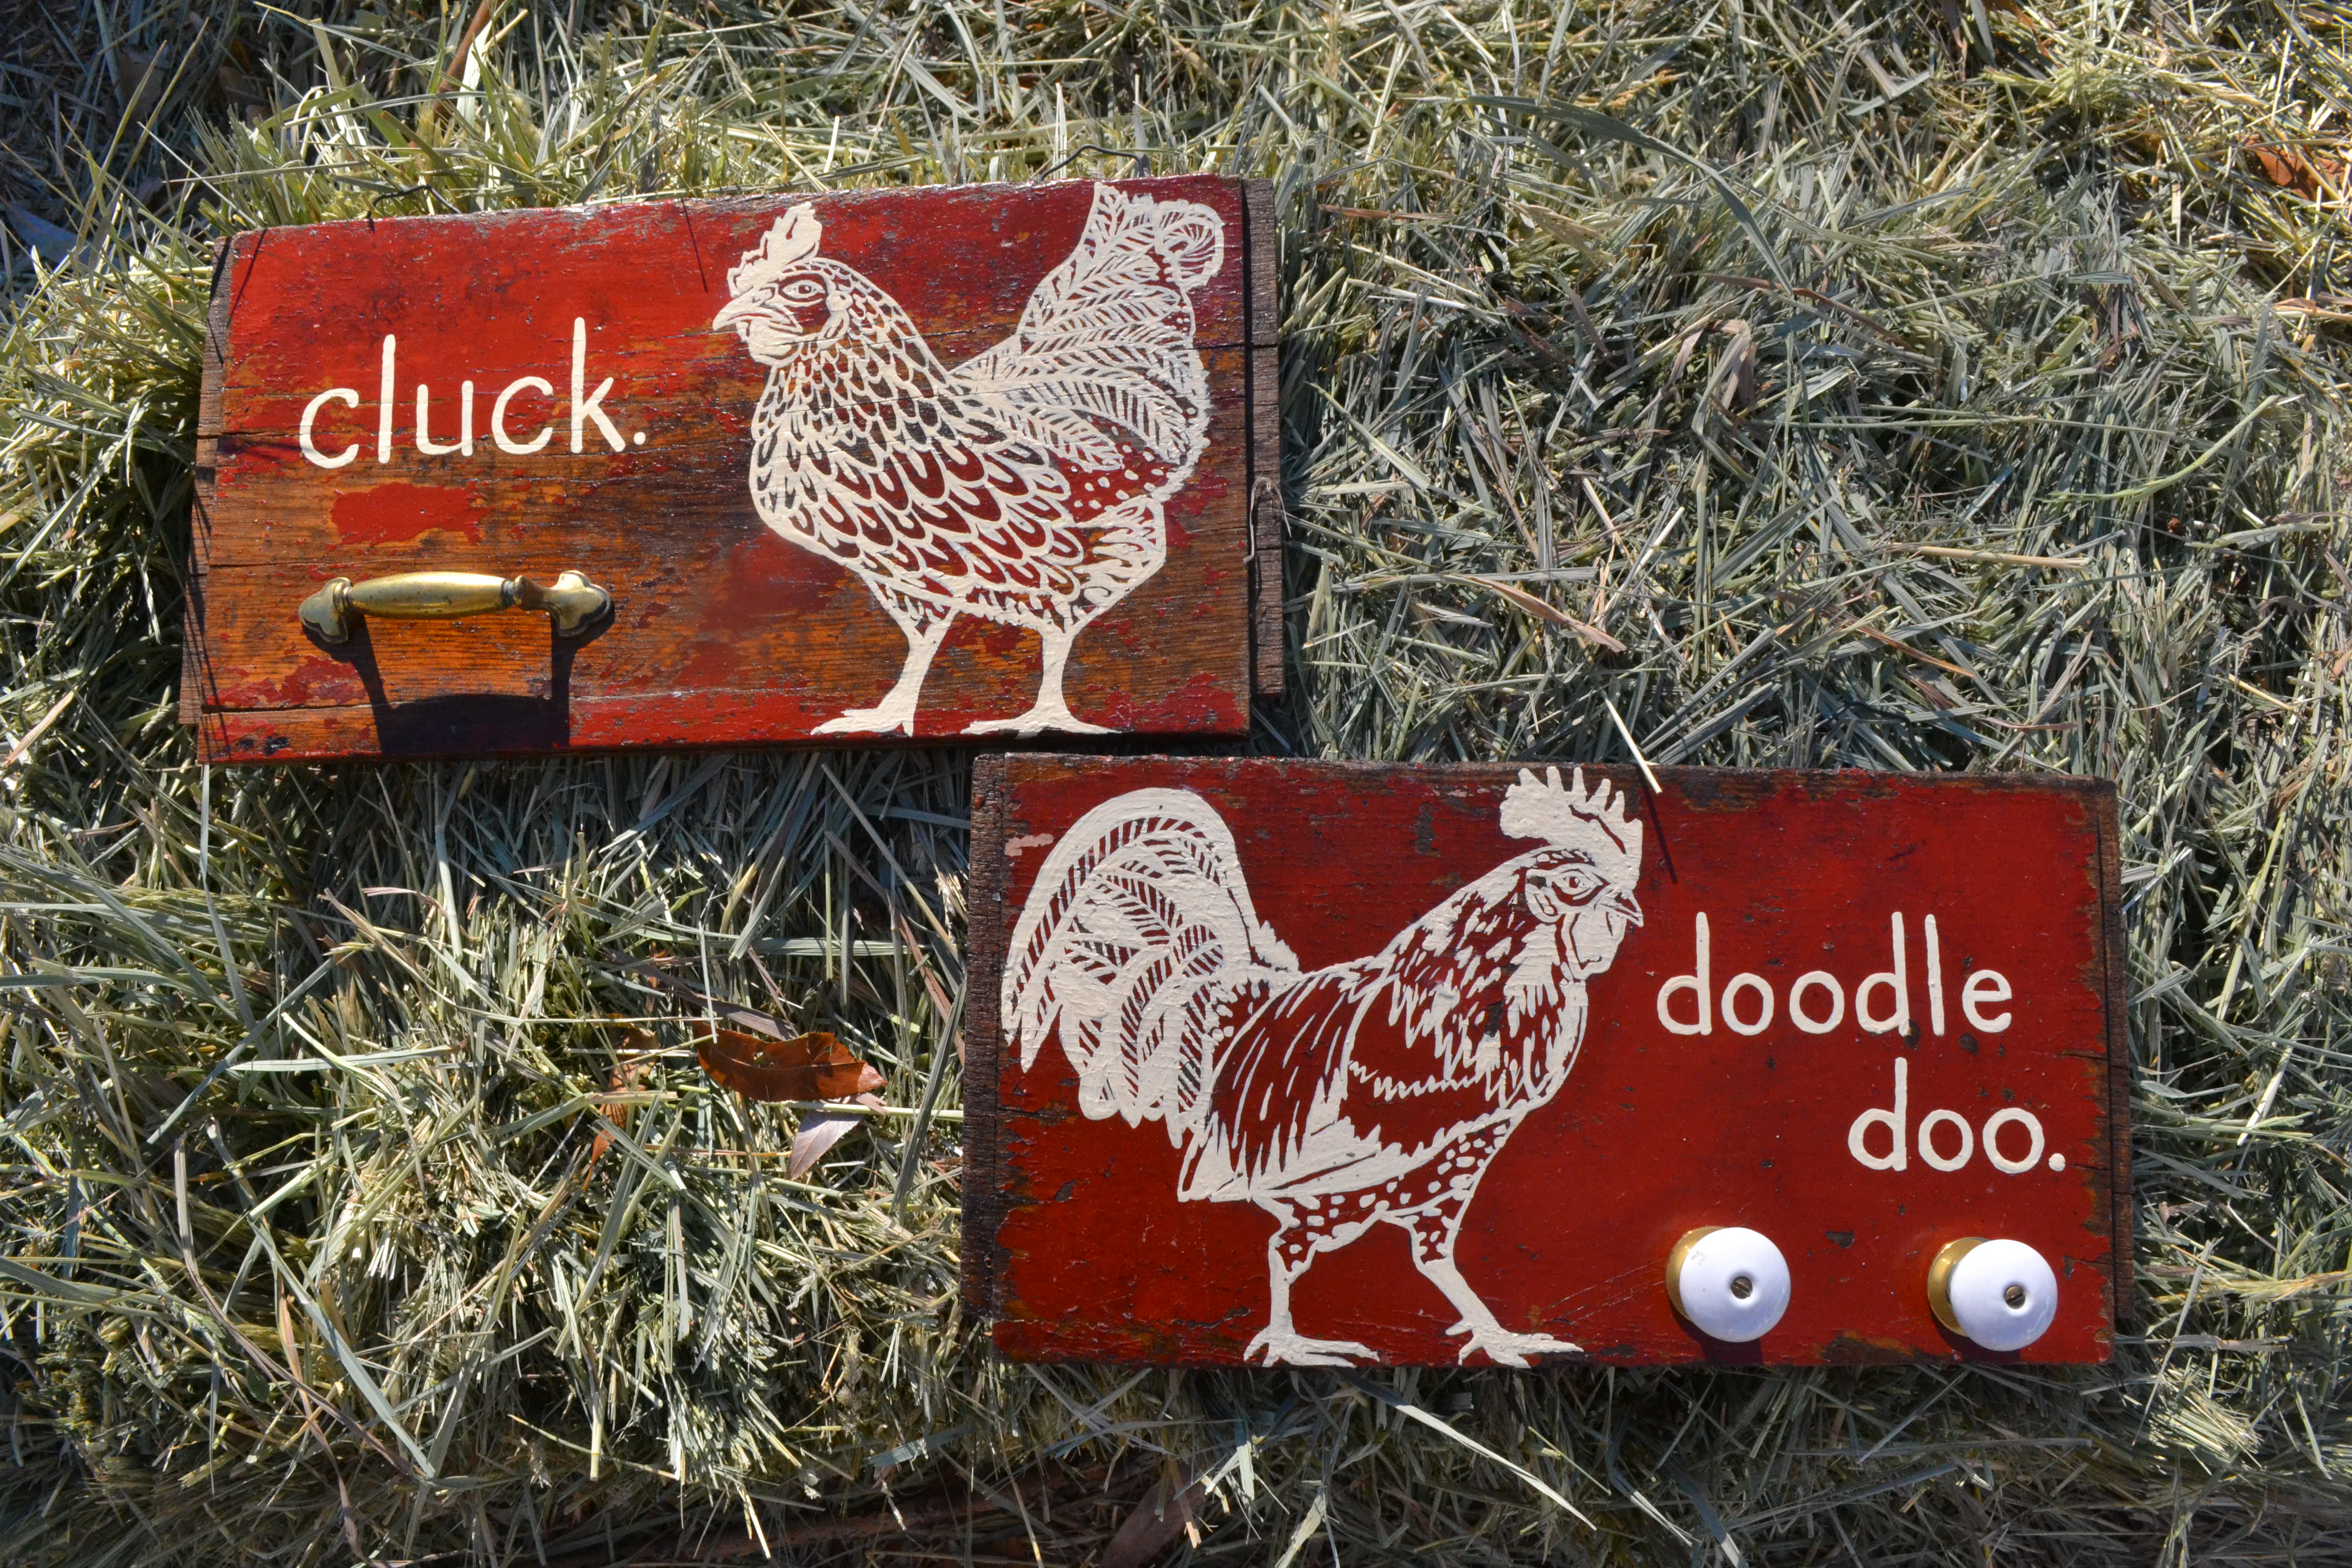 Cluck and Doodle Doo